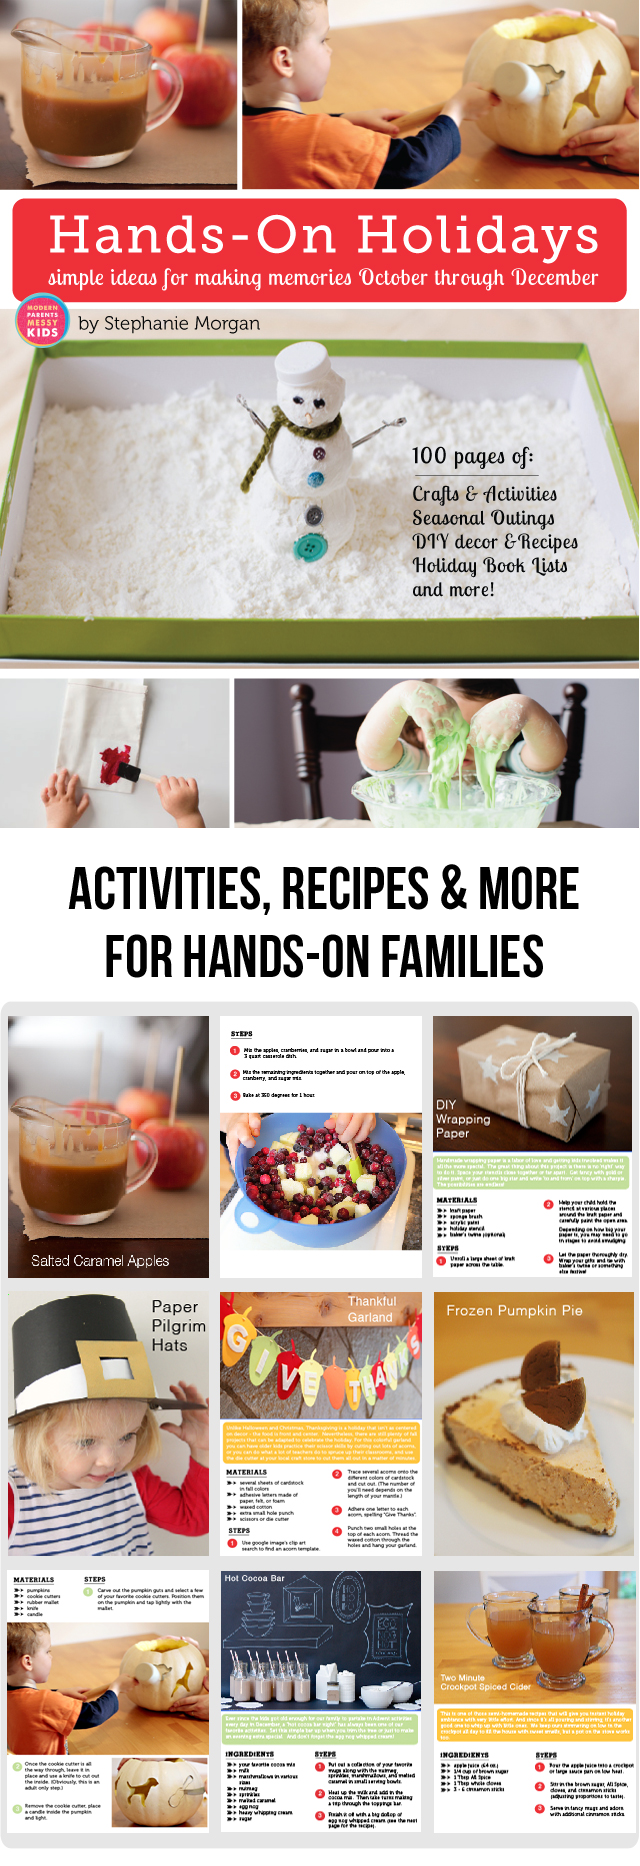 Hands-On Holidays eBook: Simple Ideas for Making Memories October through December